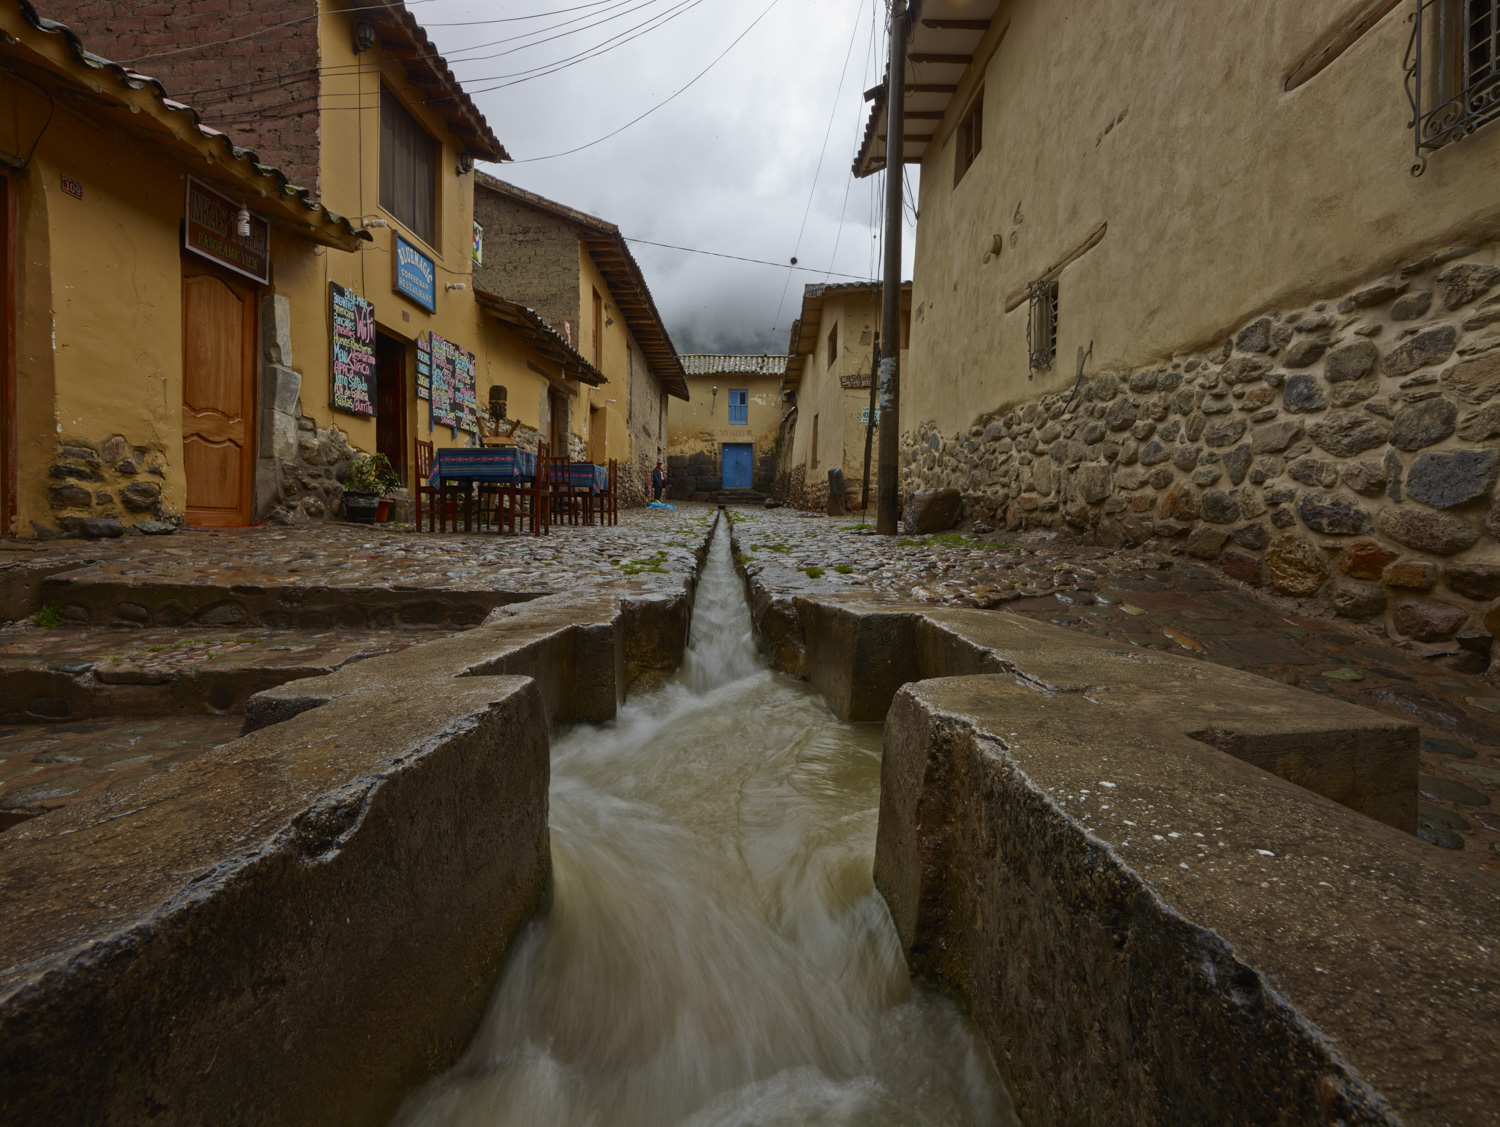 Water channel - Ollentaytambo, February 2016